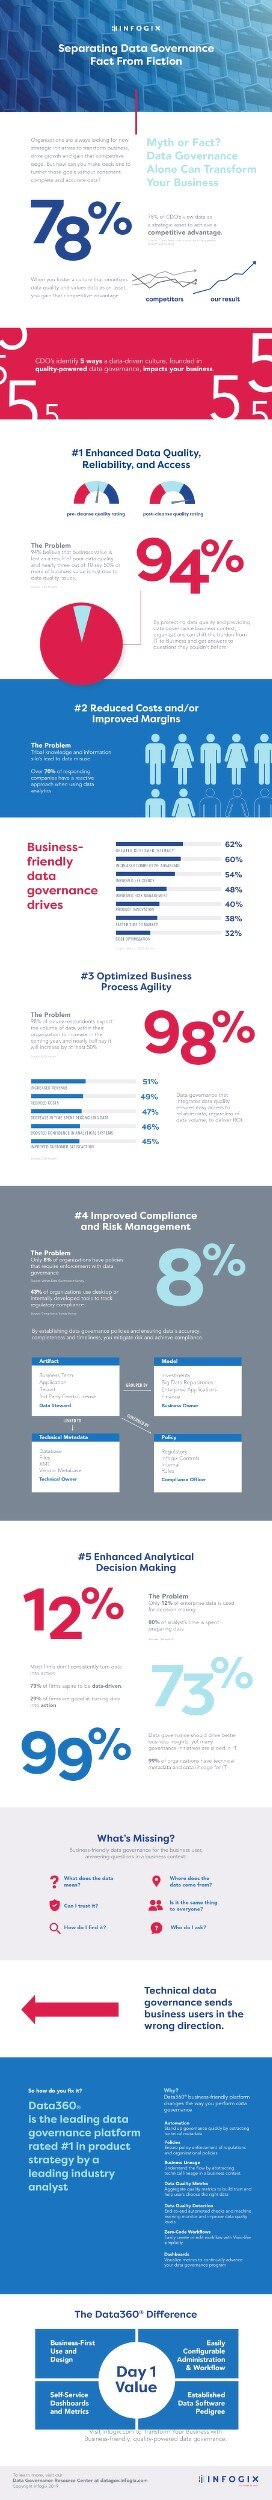 Dispelling the Data Governance Myth Infographic